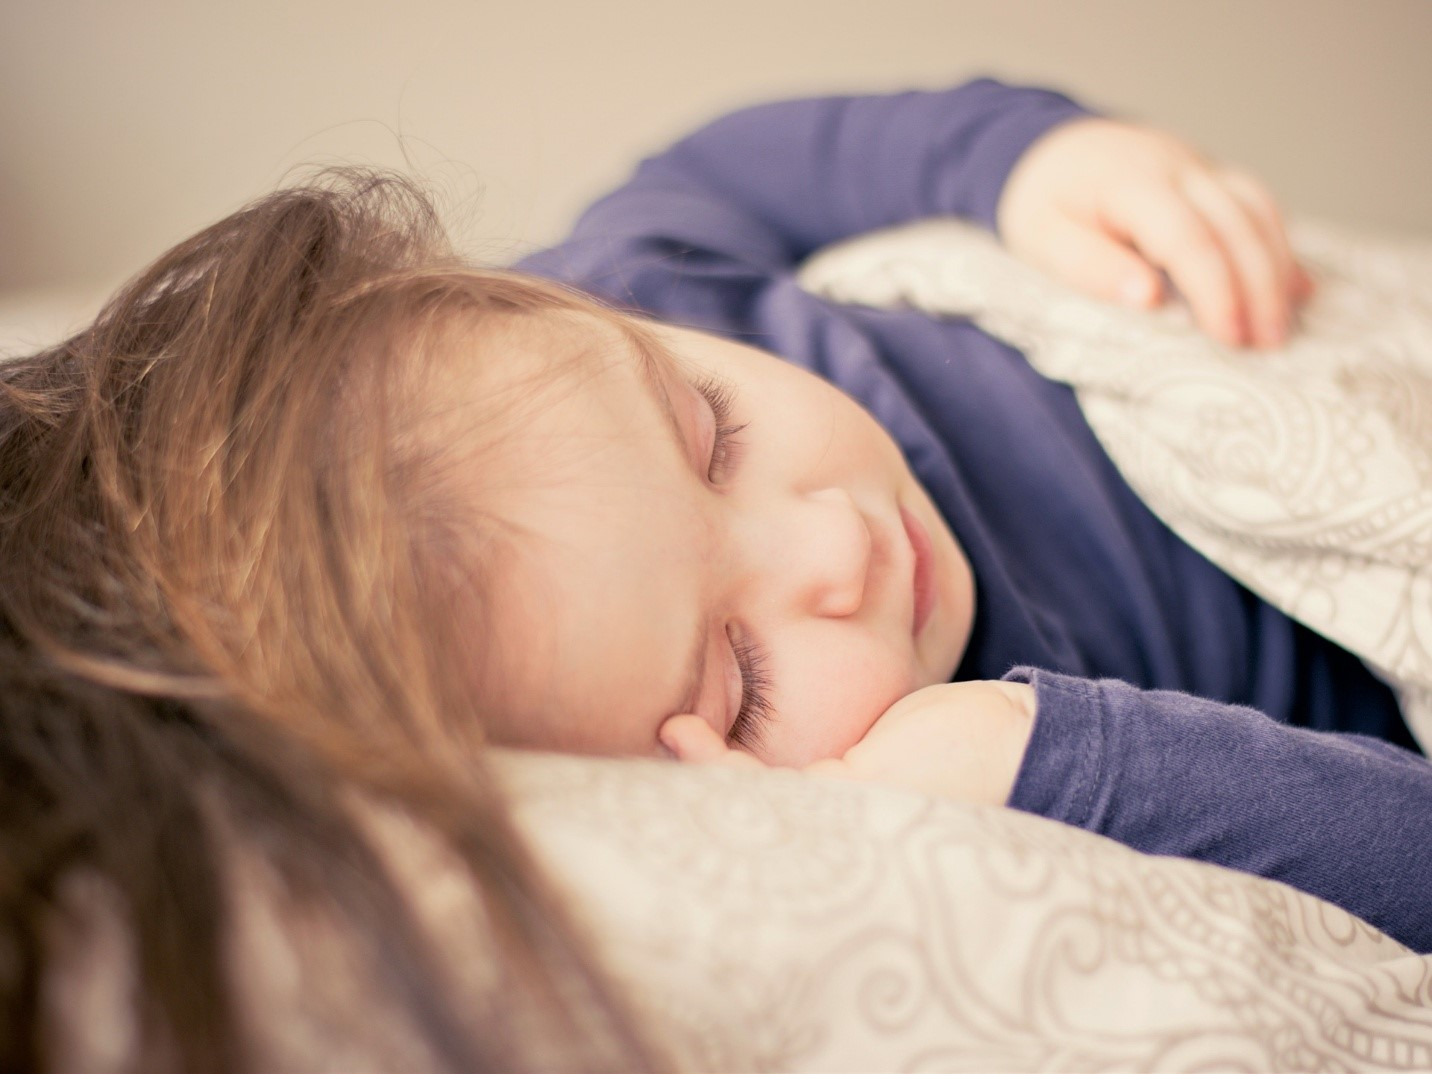 Easy Ways to Teach Your Child Healthy Sleep Habits [Guest Post